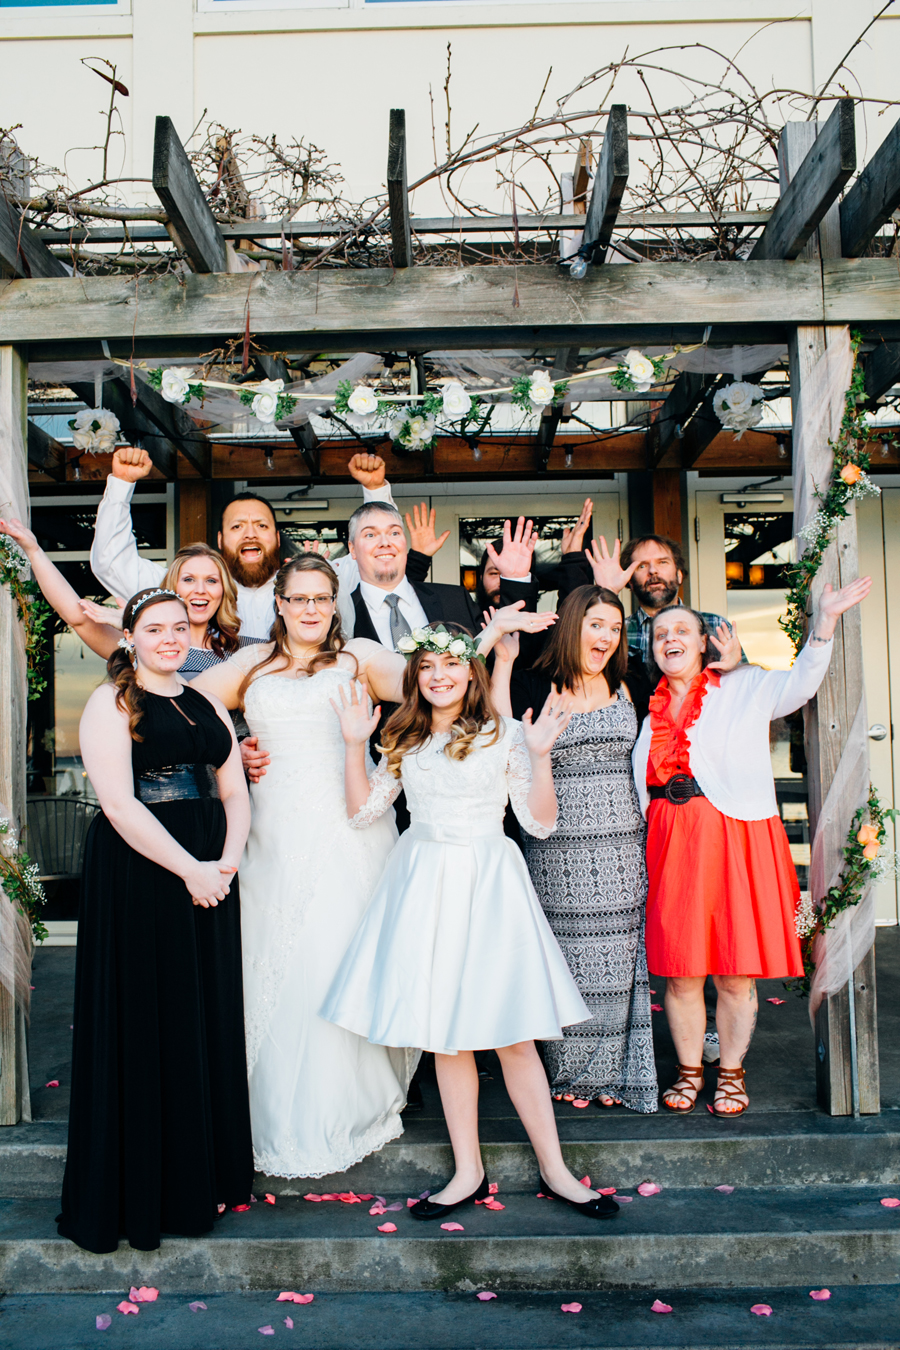 057-bellingham-wedding-photographer-chrysalis-inn-and-spa-elopement-katheryn-moran-photography.jpg